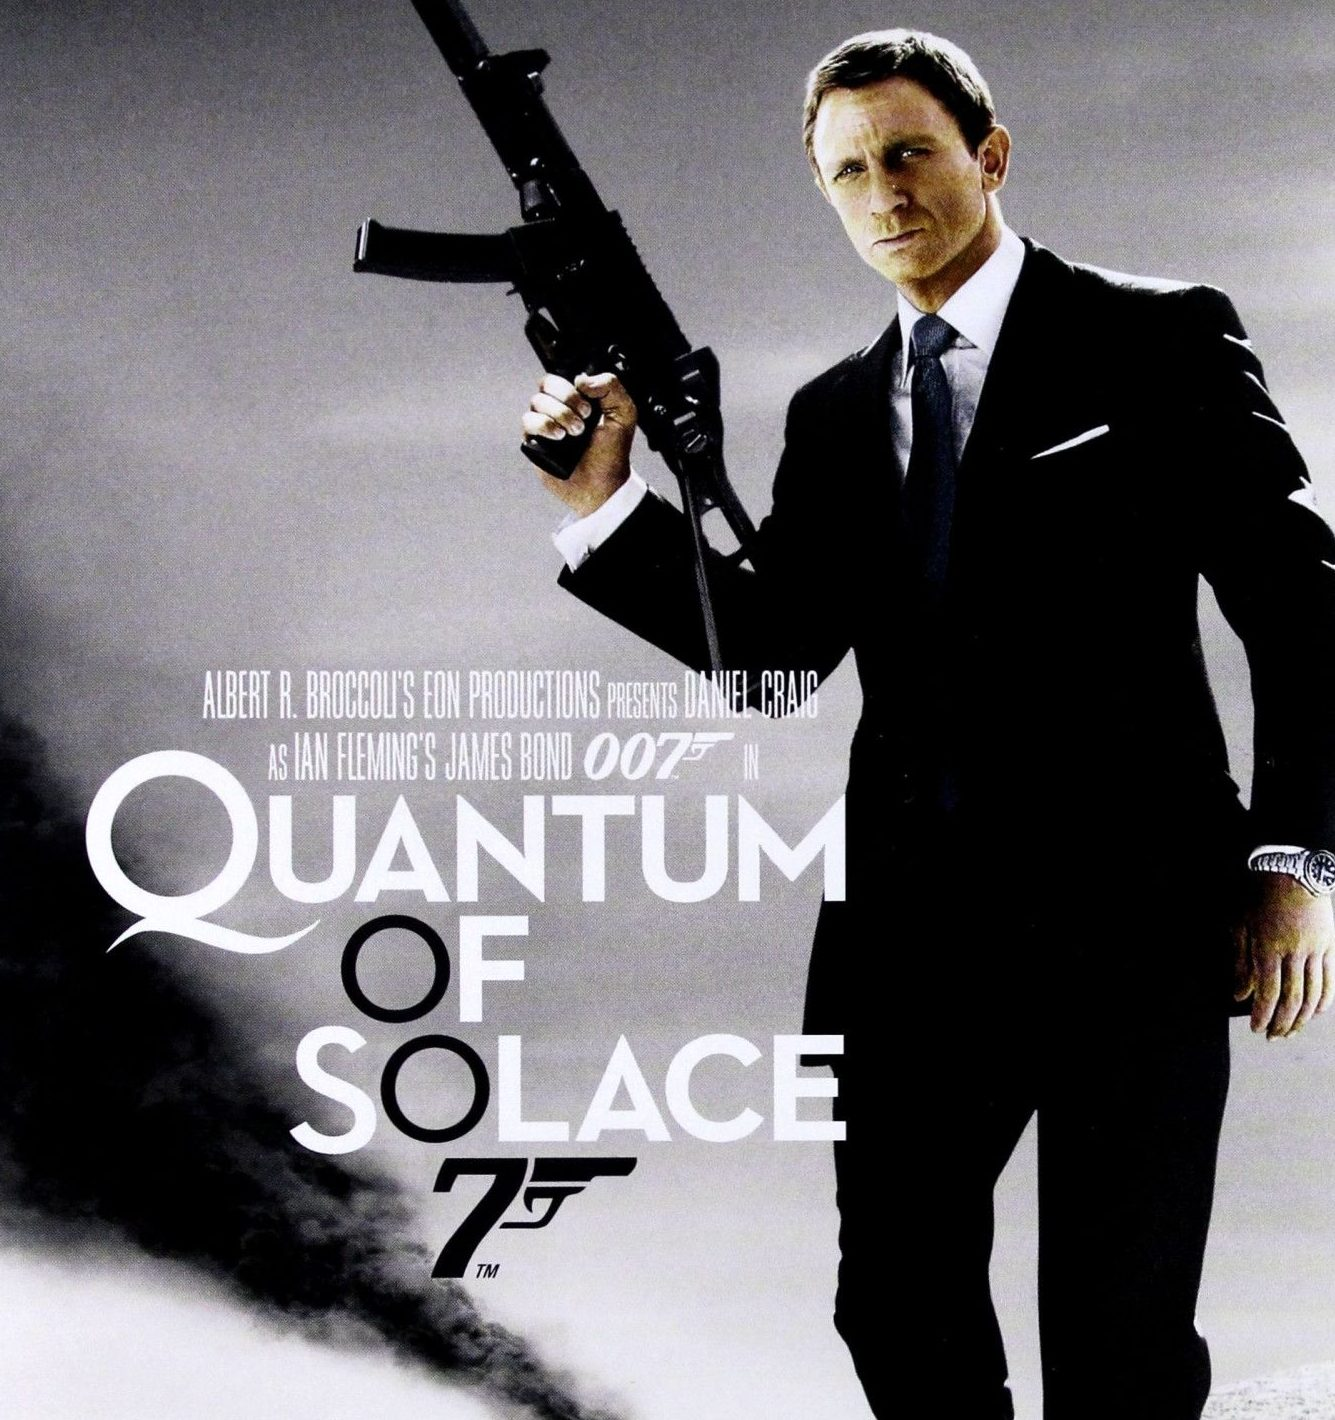 res 9b75fde497e279df109124ac5899b301 full e1582724575621 11 Of The Best James Bond Movies (And 10 Of The Worst)